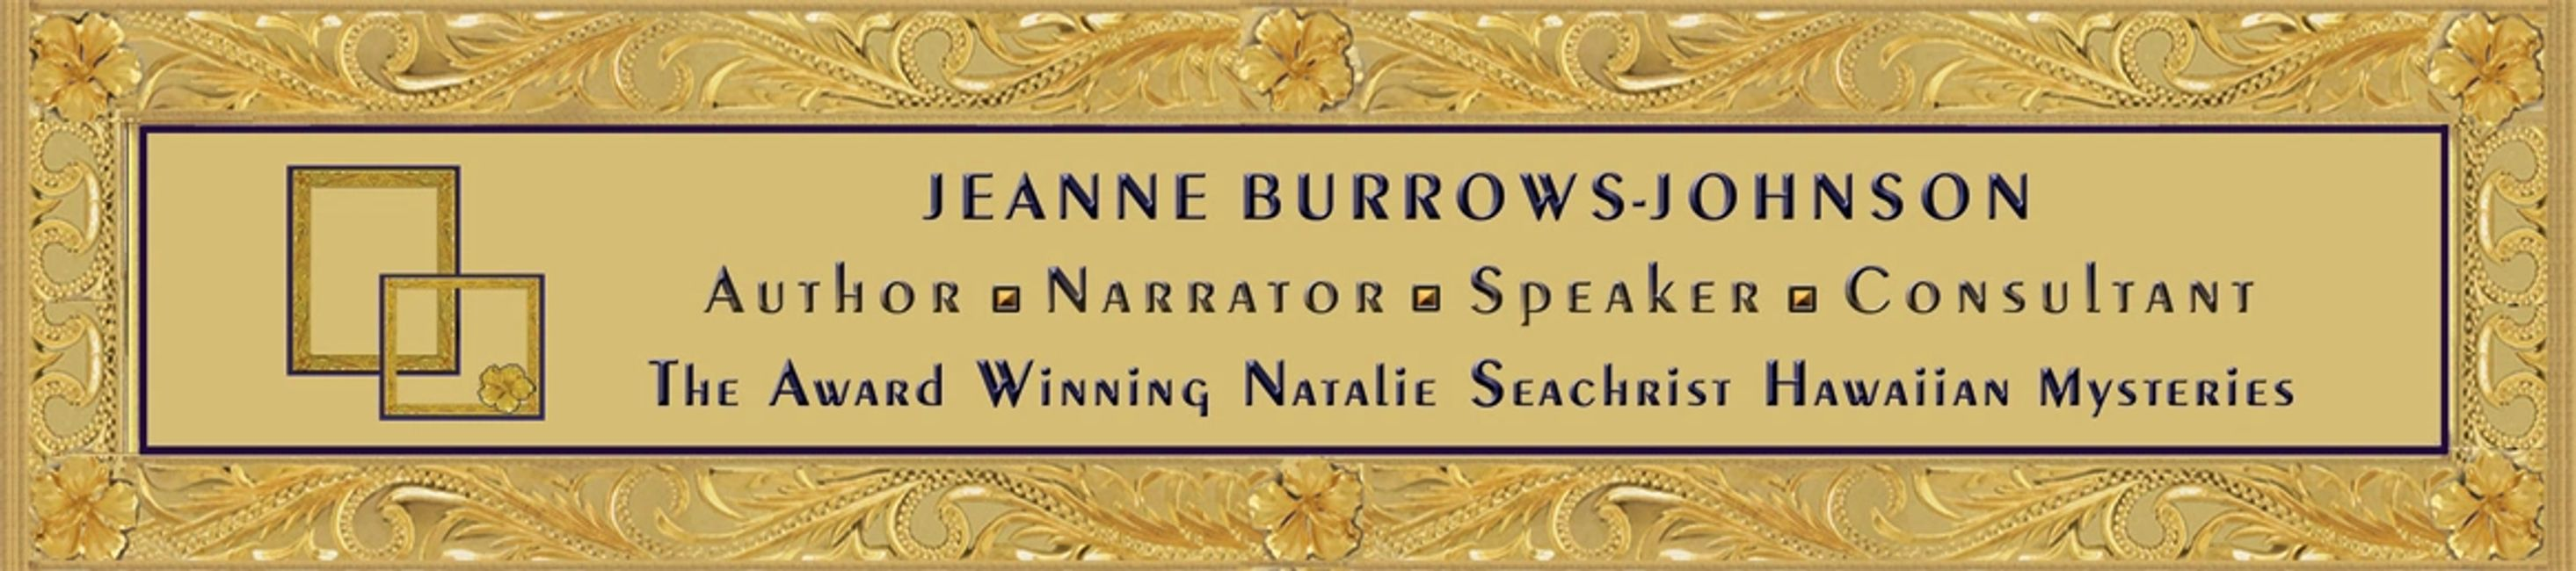 Hawaiian heirloom gold jewelry banner for Jeanne Burrows-Johnson, author Natalie Seachrist Mysteries